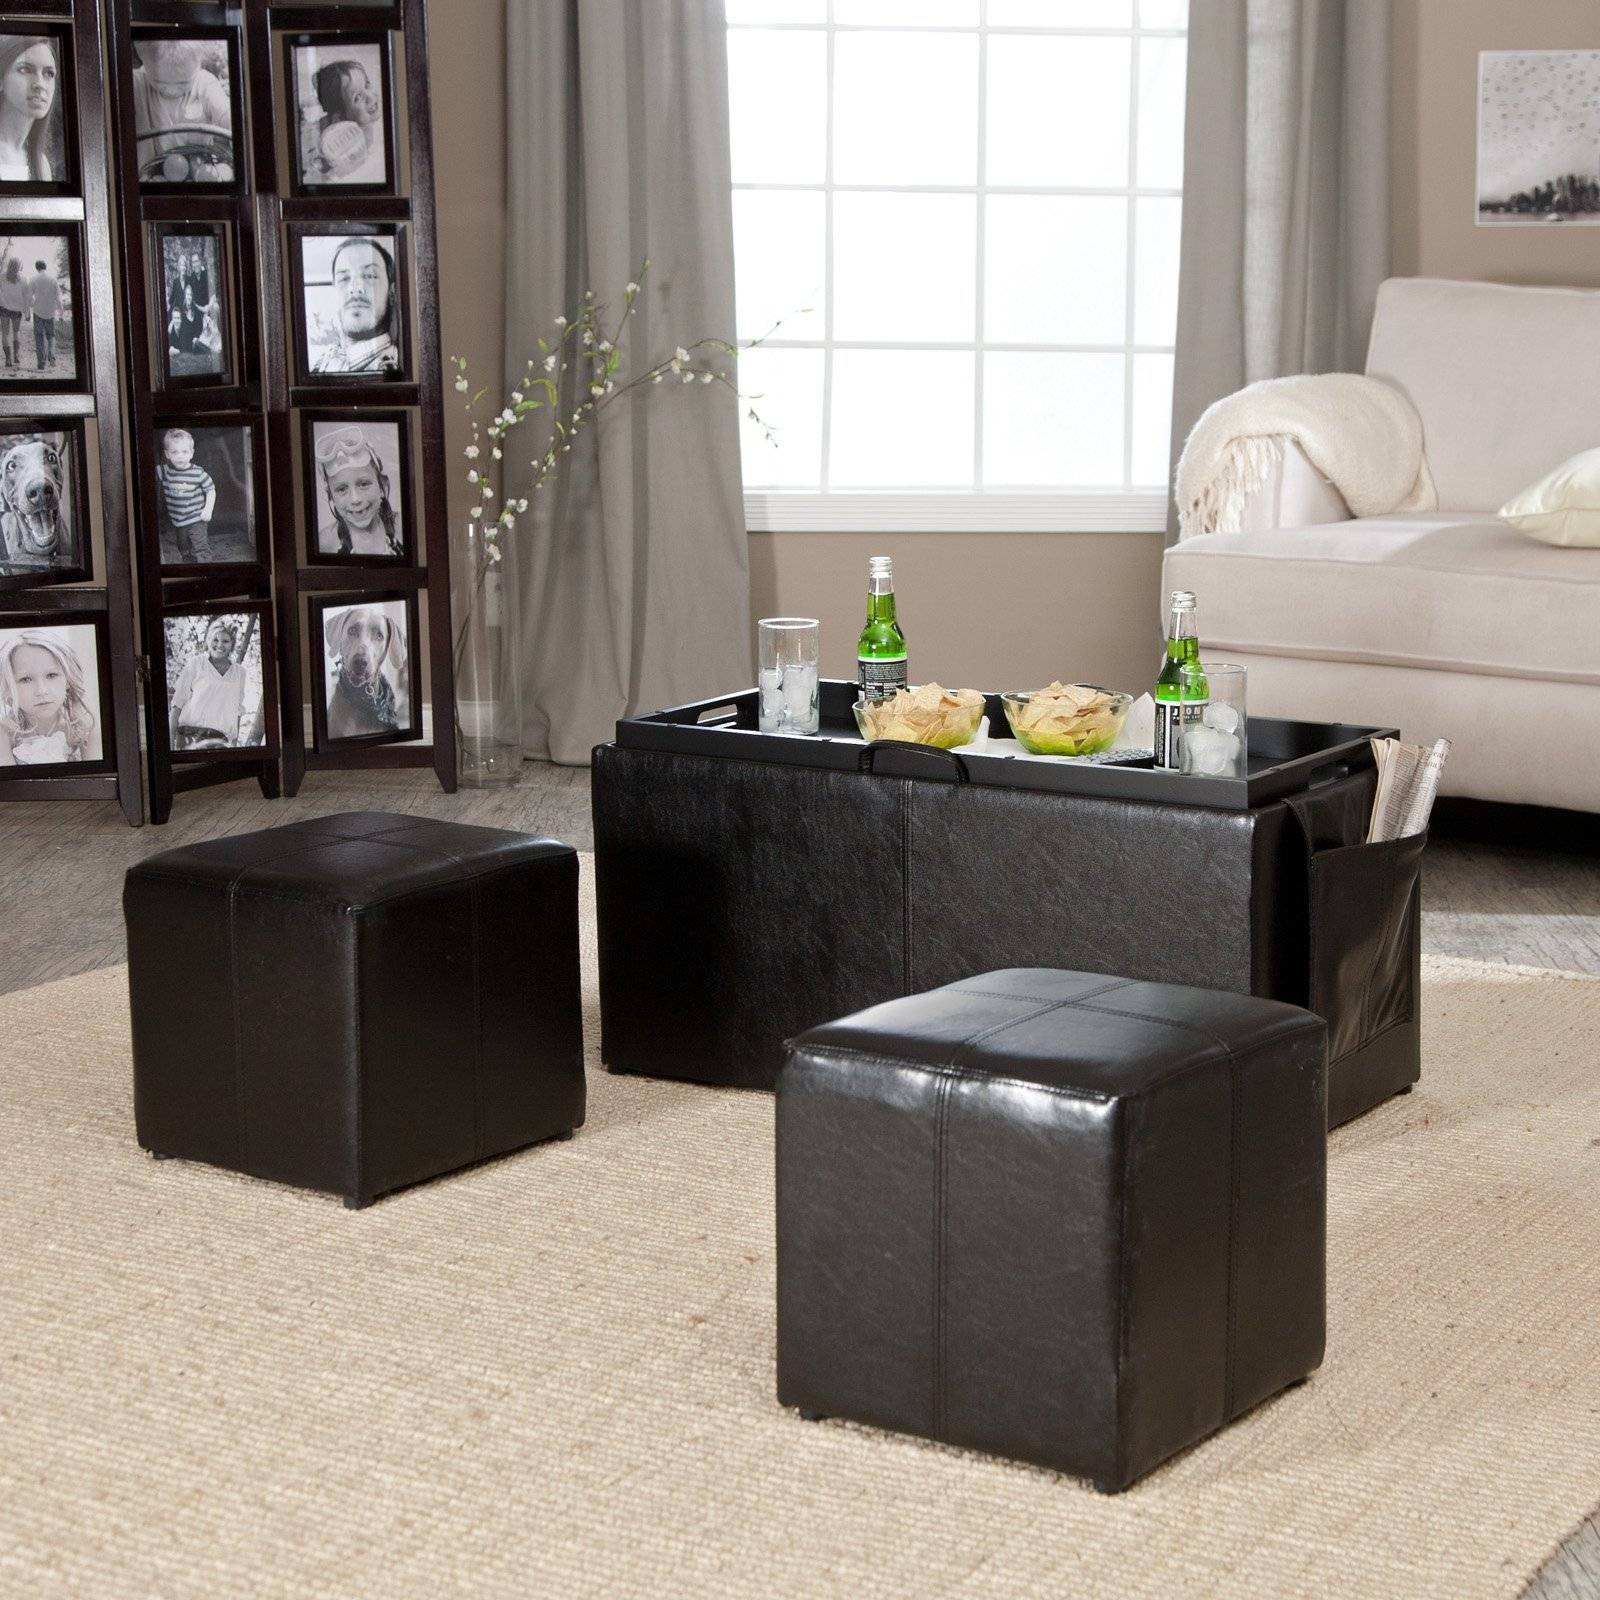 Hartley Coffee Table Storage Ottoman With Tray - Side Ottomans inside Brown Leather Ottoman Coffee Tables (Image 22 of 30)